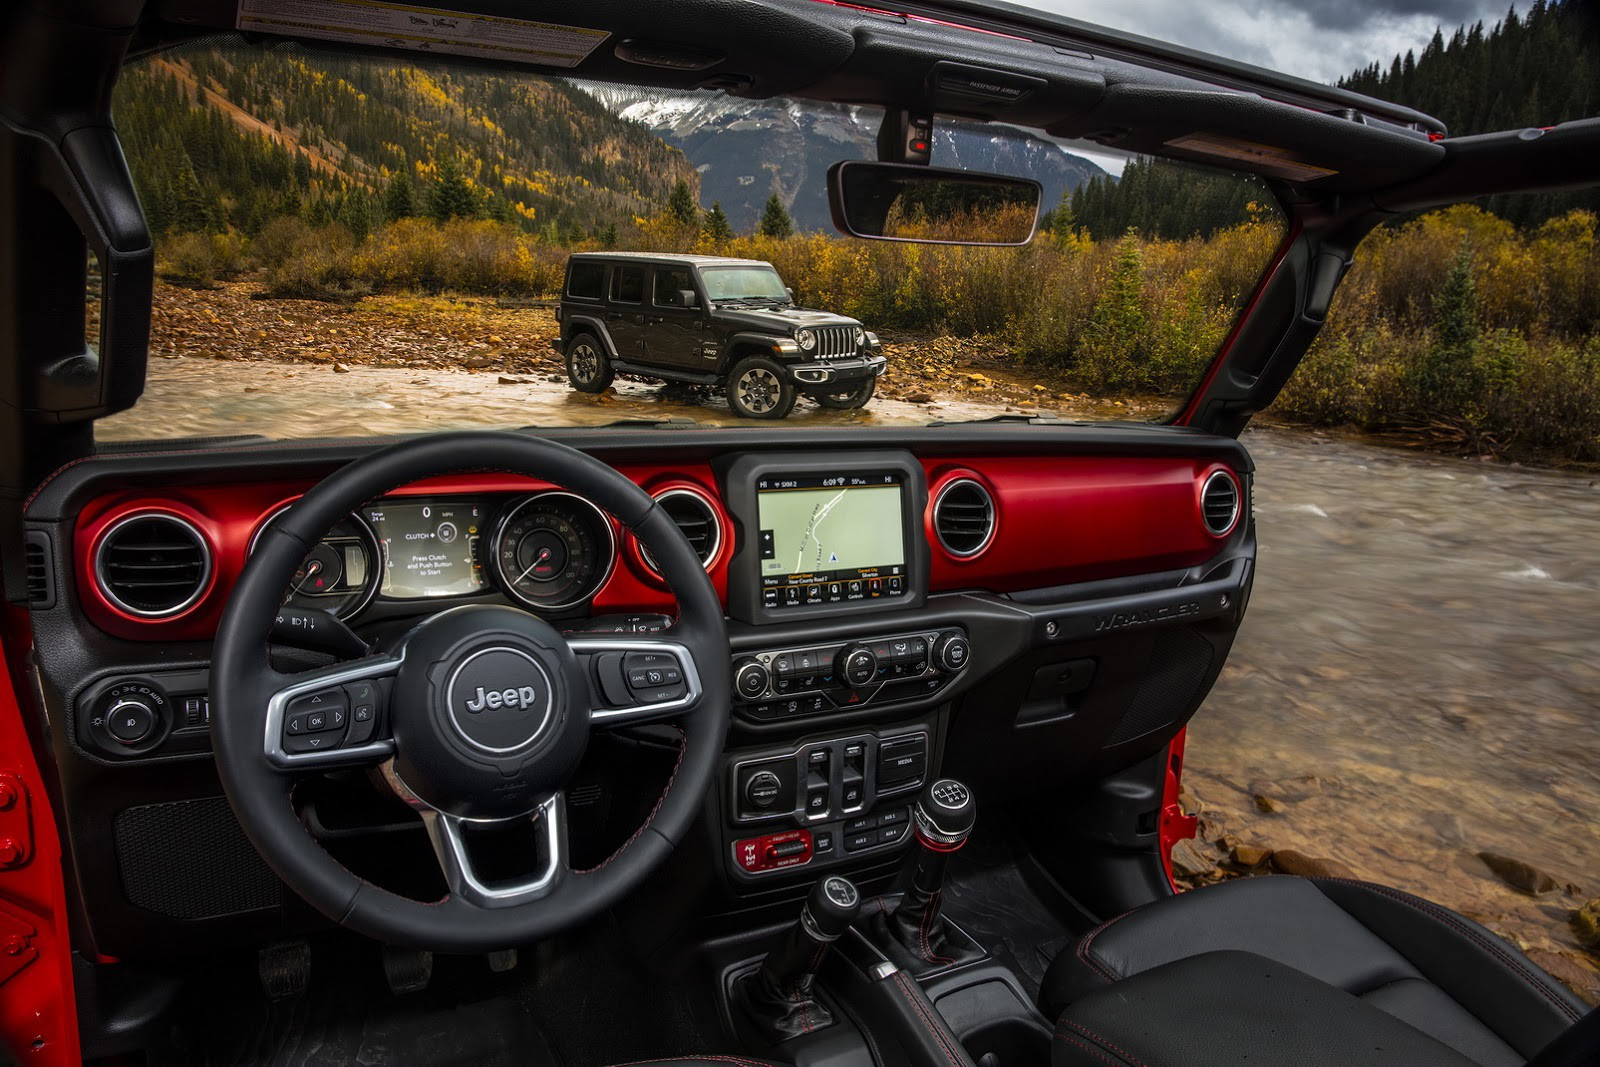 Jeep Wrangle 2018 Interior